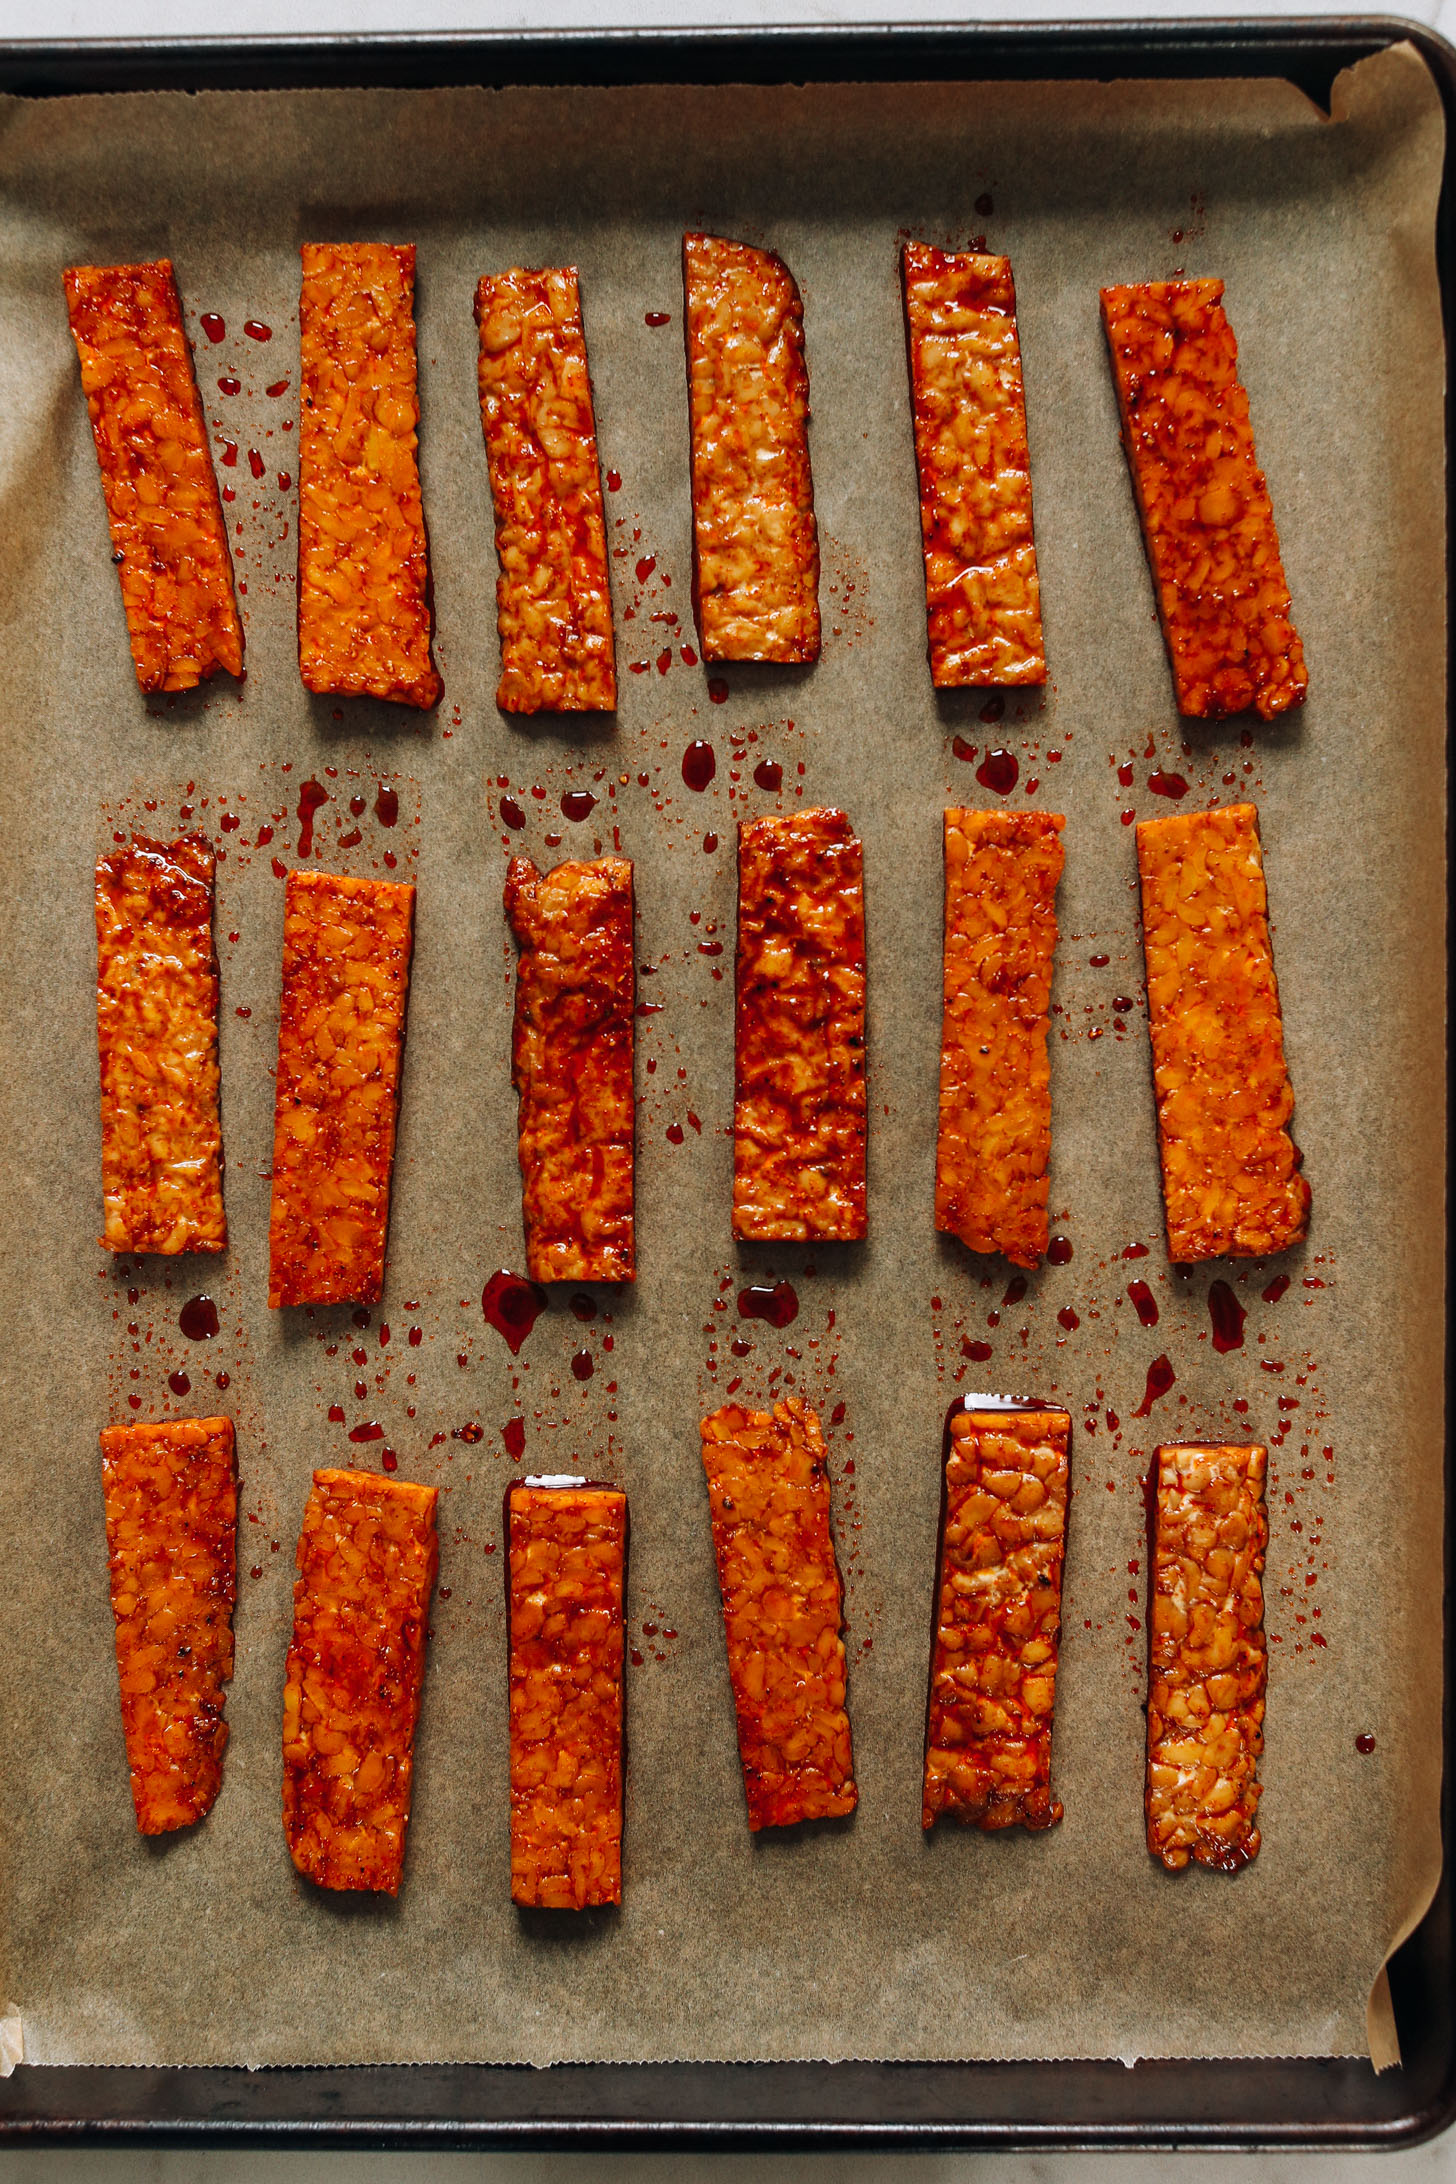 Baking sheet with thinly sliced strips of tempeh coated in a marinade